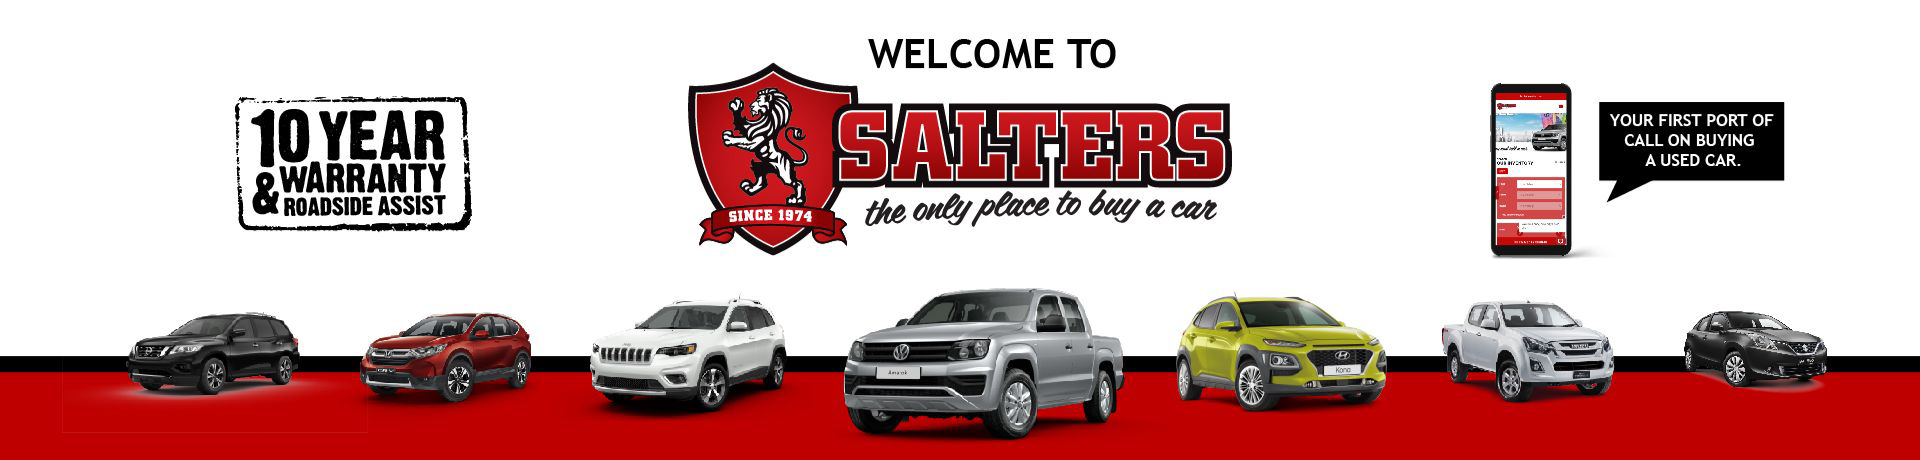 Salters The only place to buy